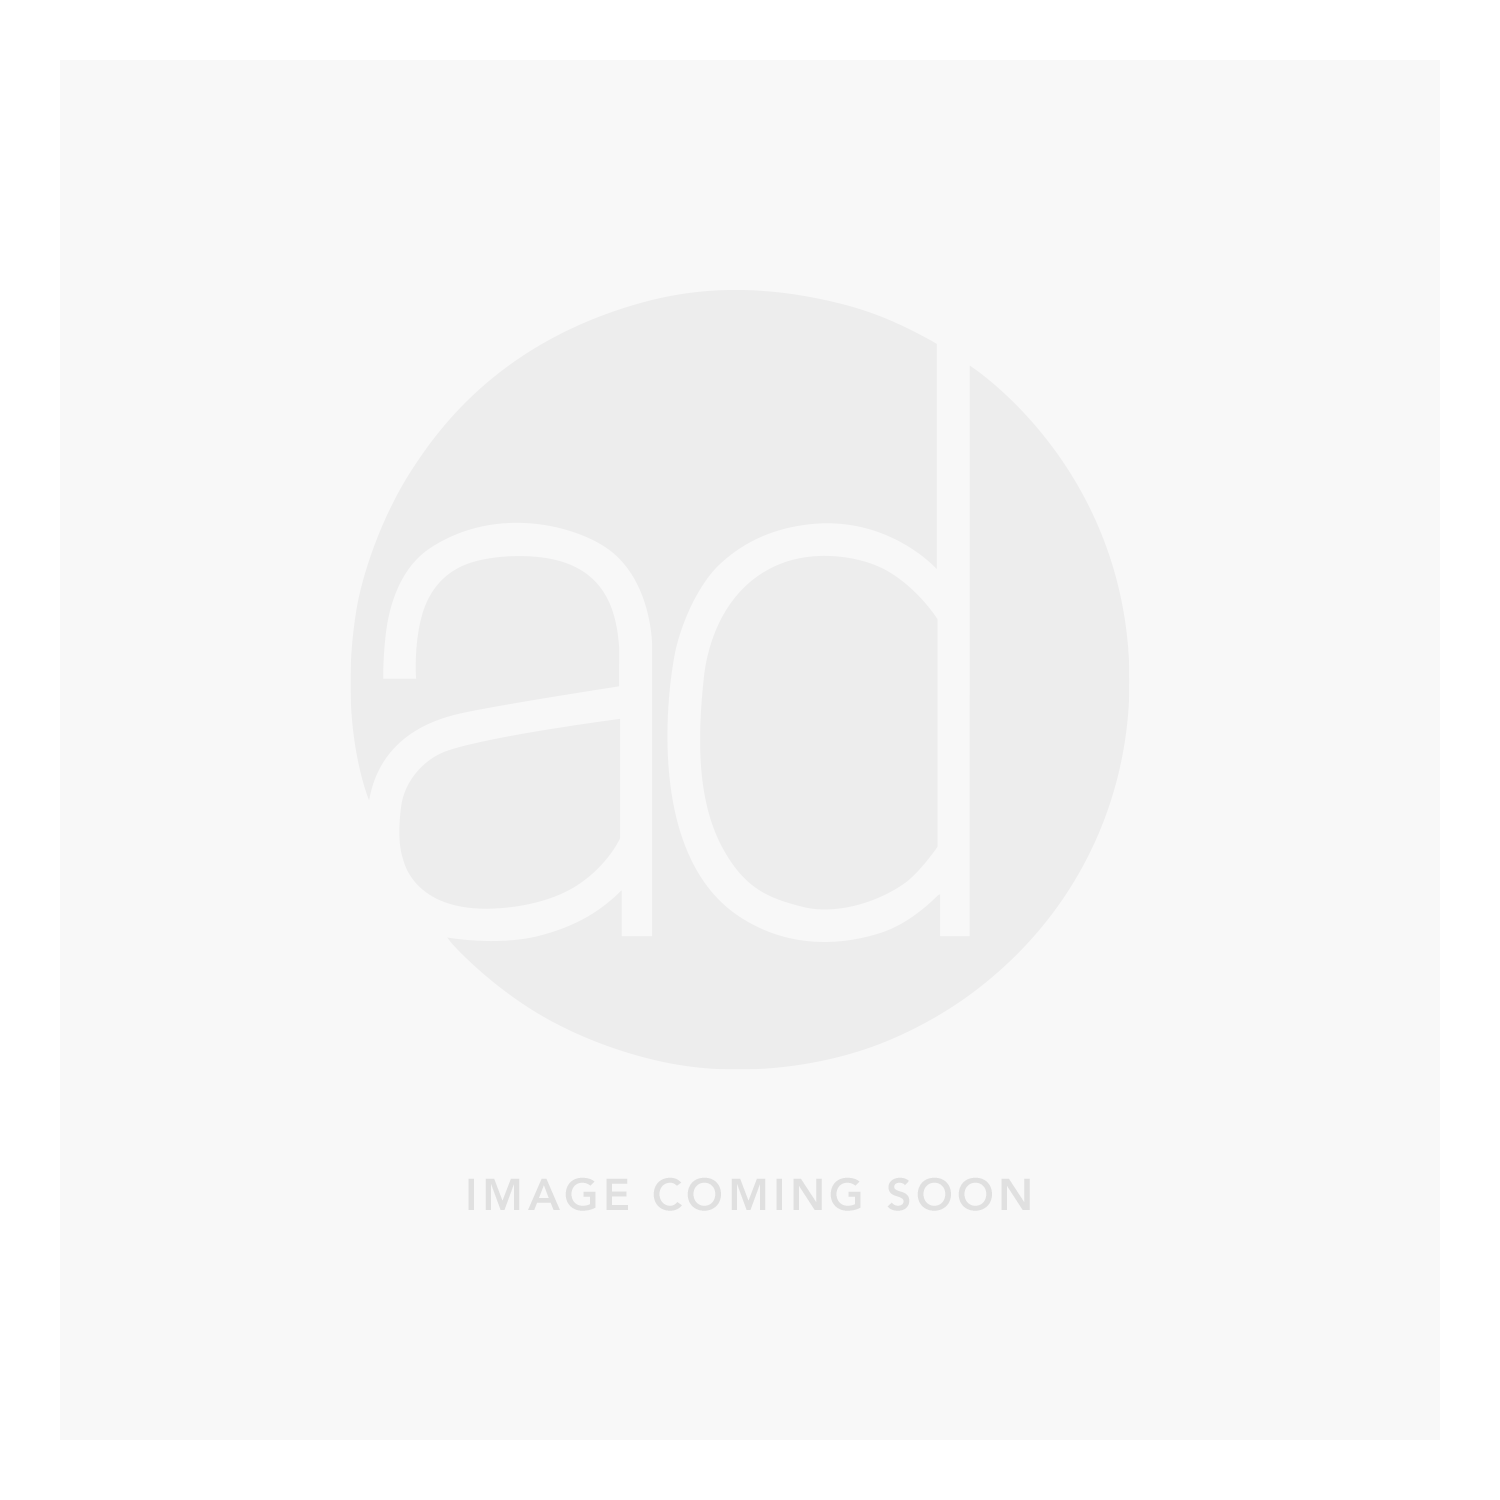 Nest Pot and Bowl